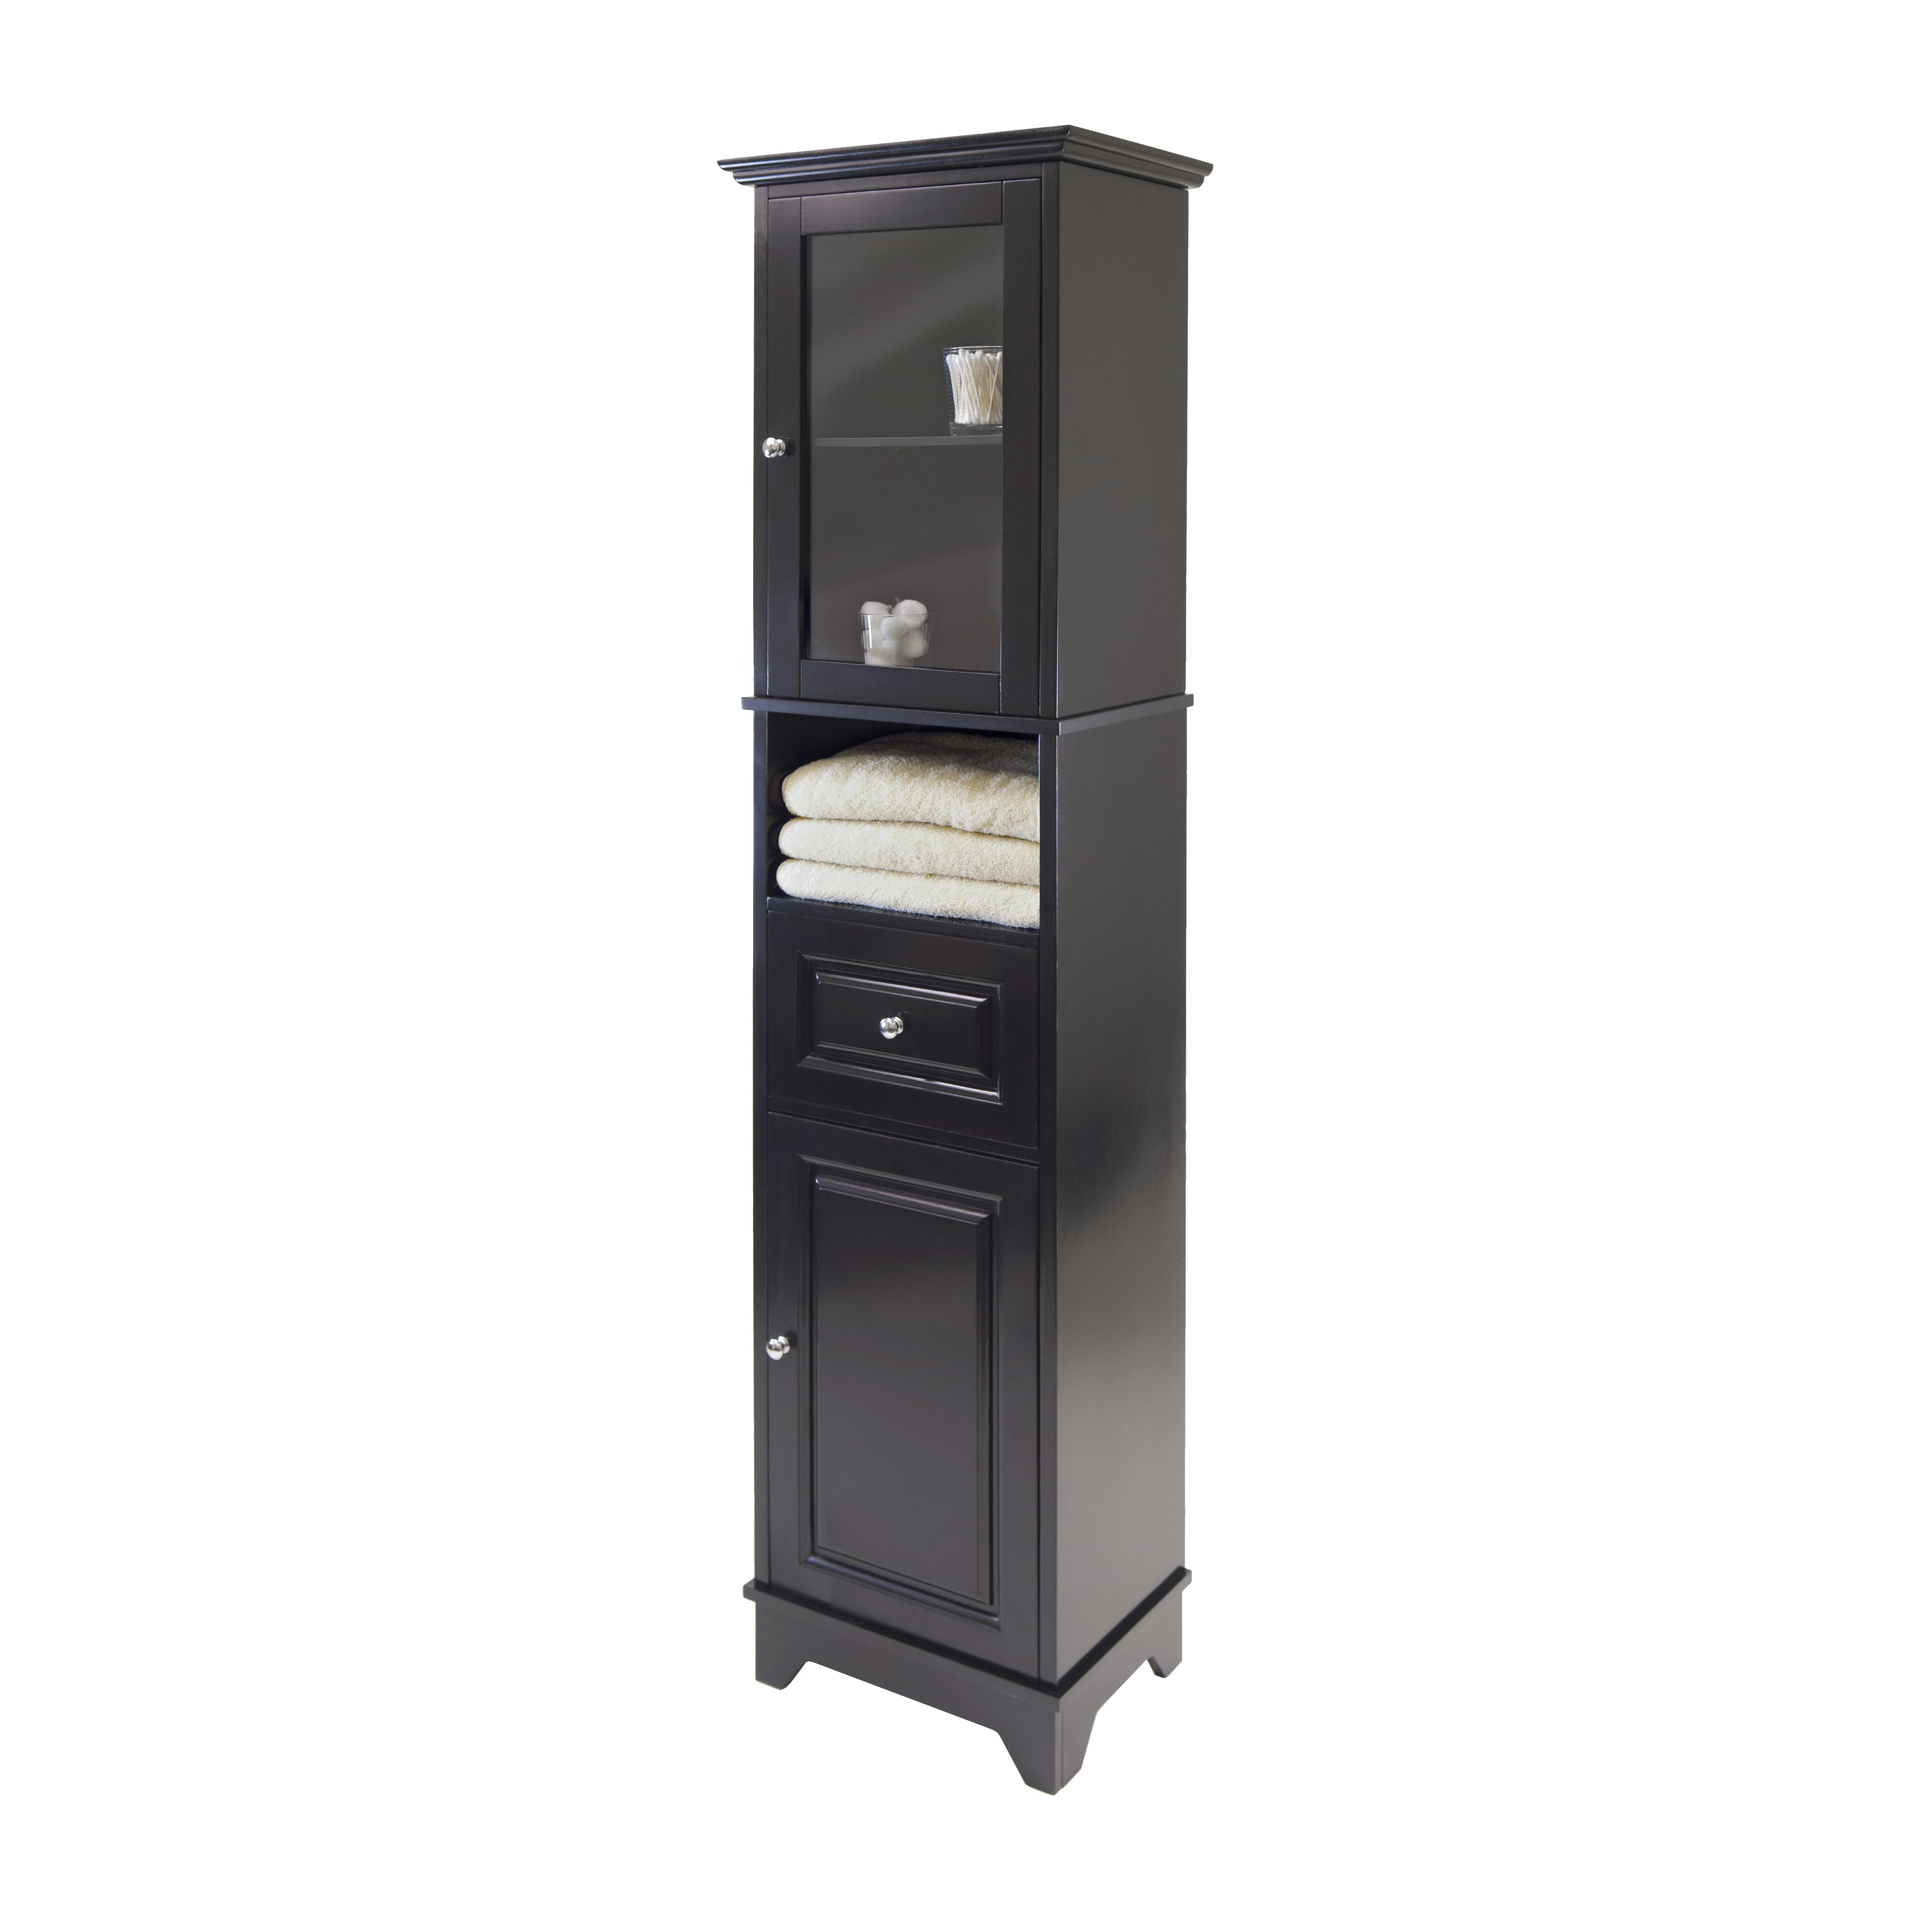 Amazon.com: Winsome Wood Alps Tall Cabinet with Glass Door and ...